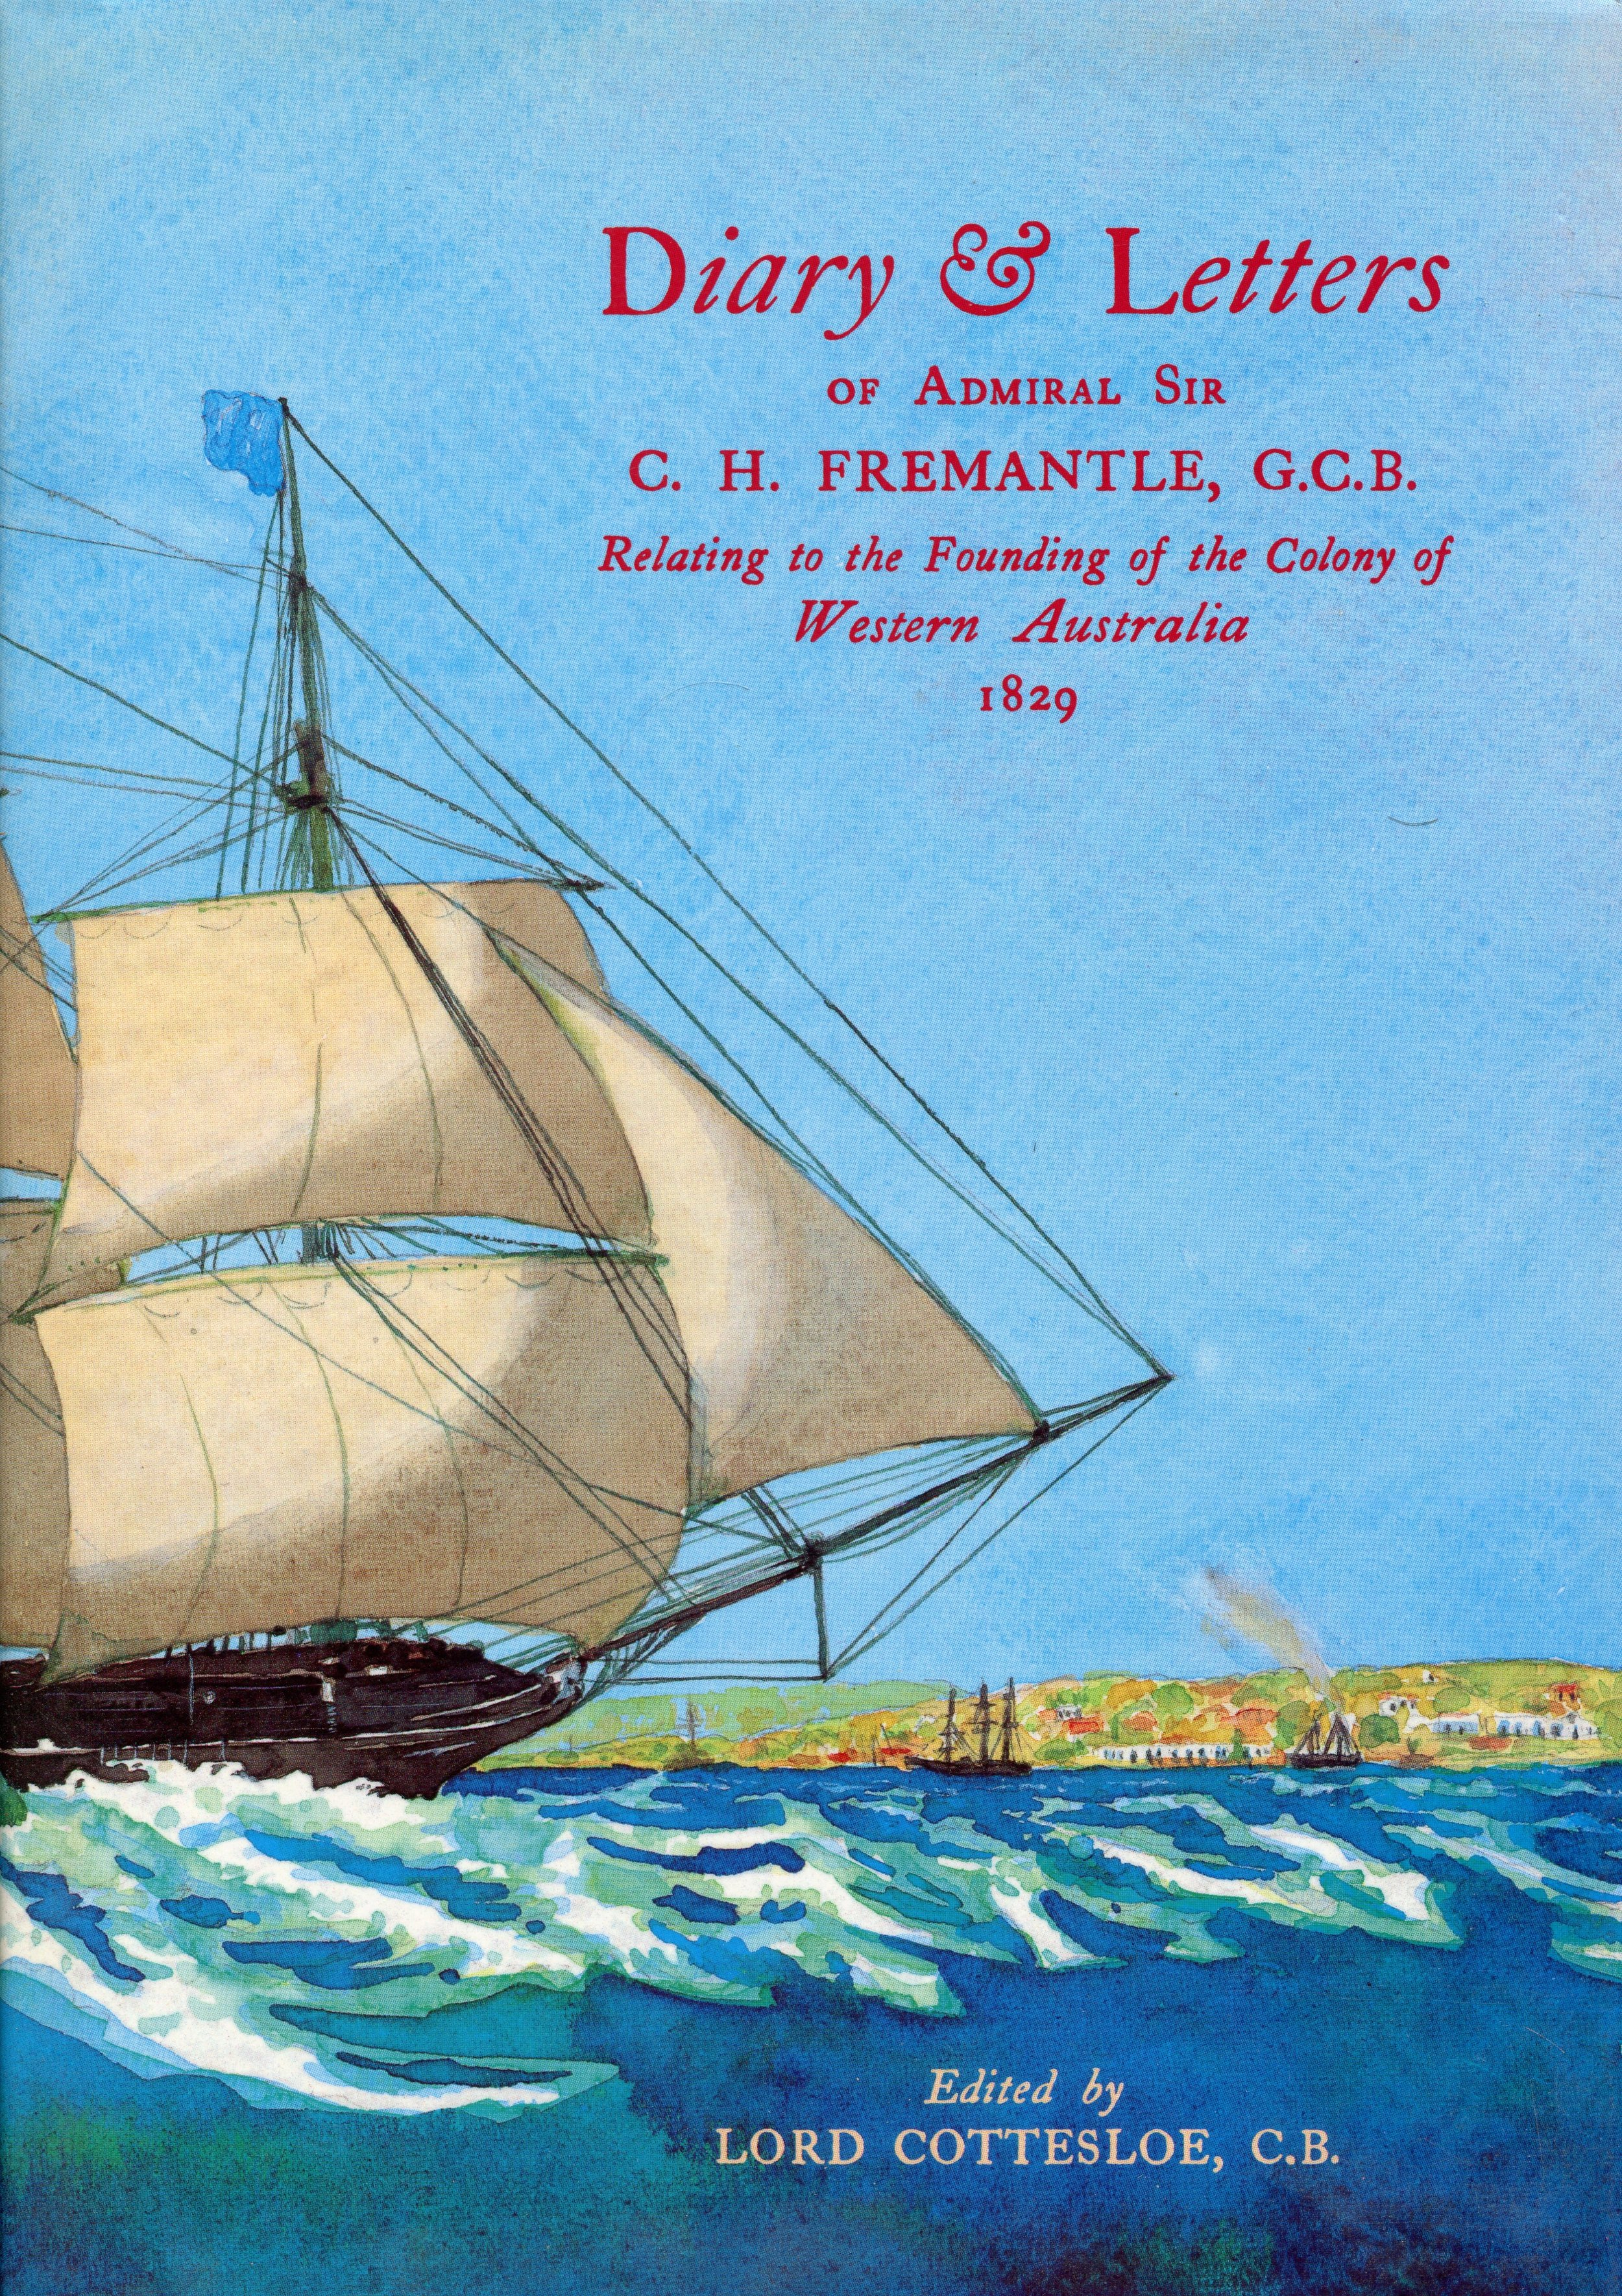 Diary & letters of Admiral Sir C.H. Fremantle, G.C.B. relating to the founding of the colony of Western Australia  Edited by Lord Cottesloe